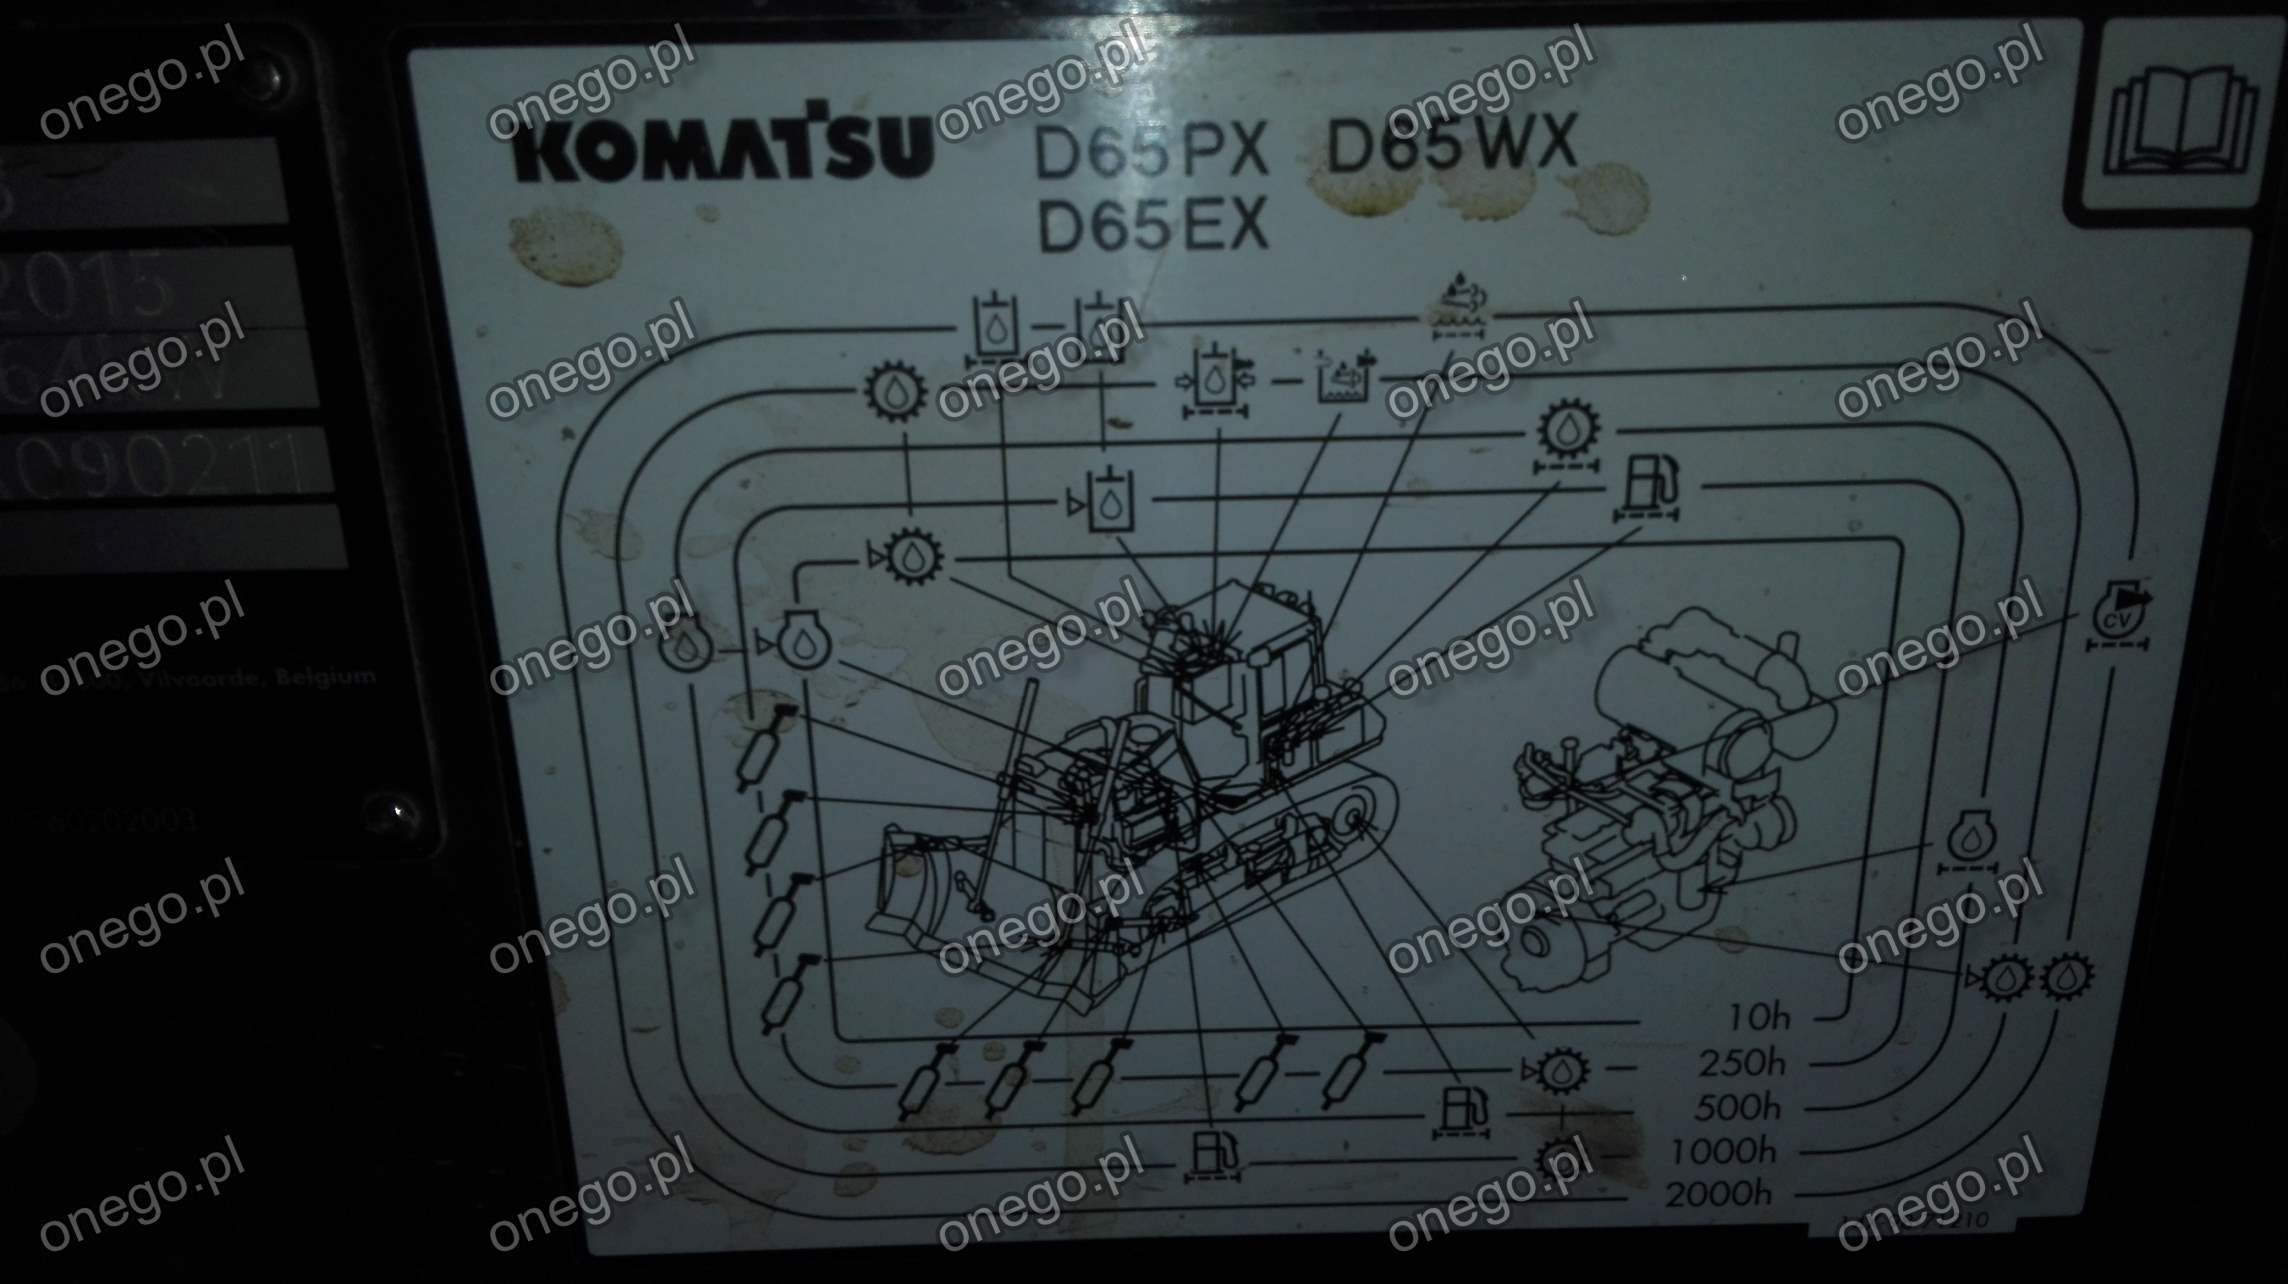 We are not an authorized KOMATSU distributor and our product is not  associated with KOMATSU in any way.